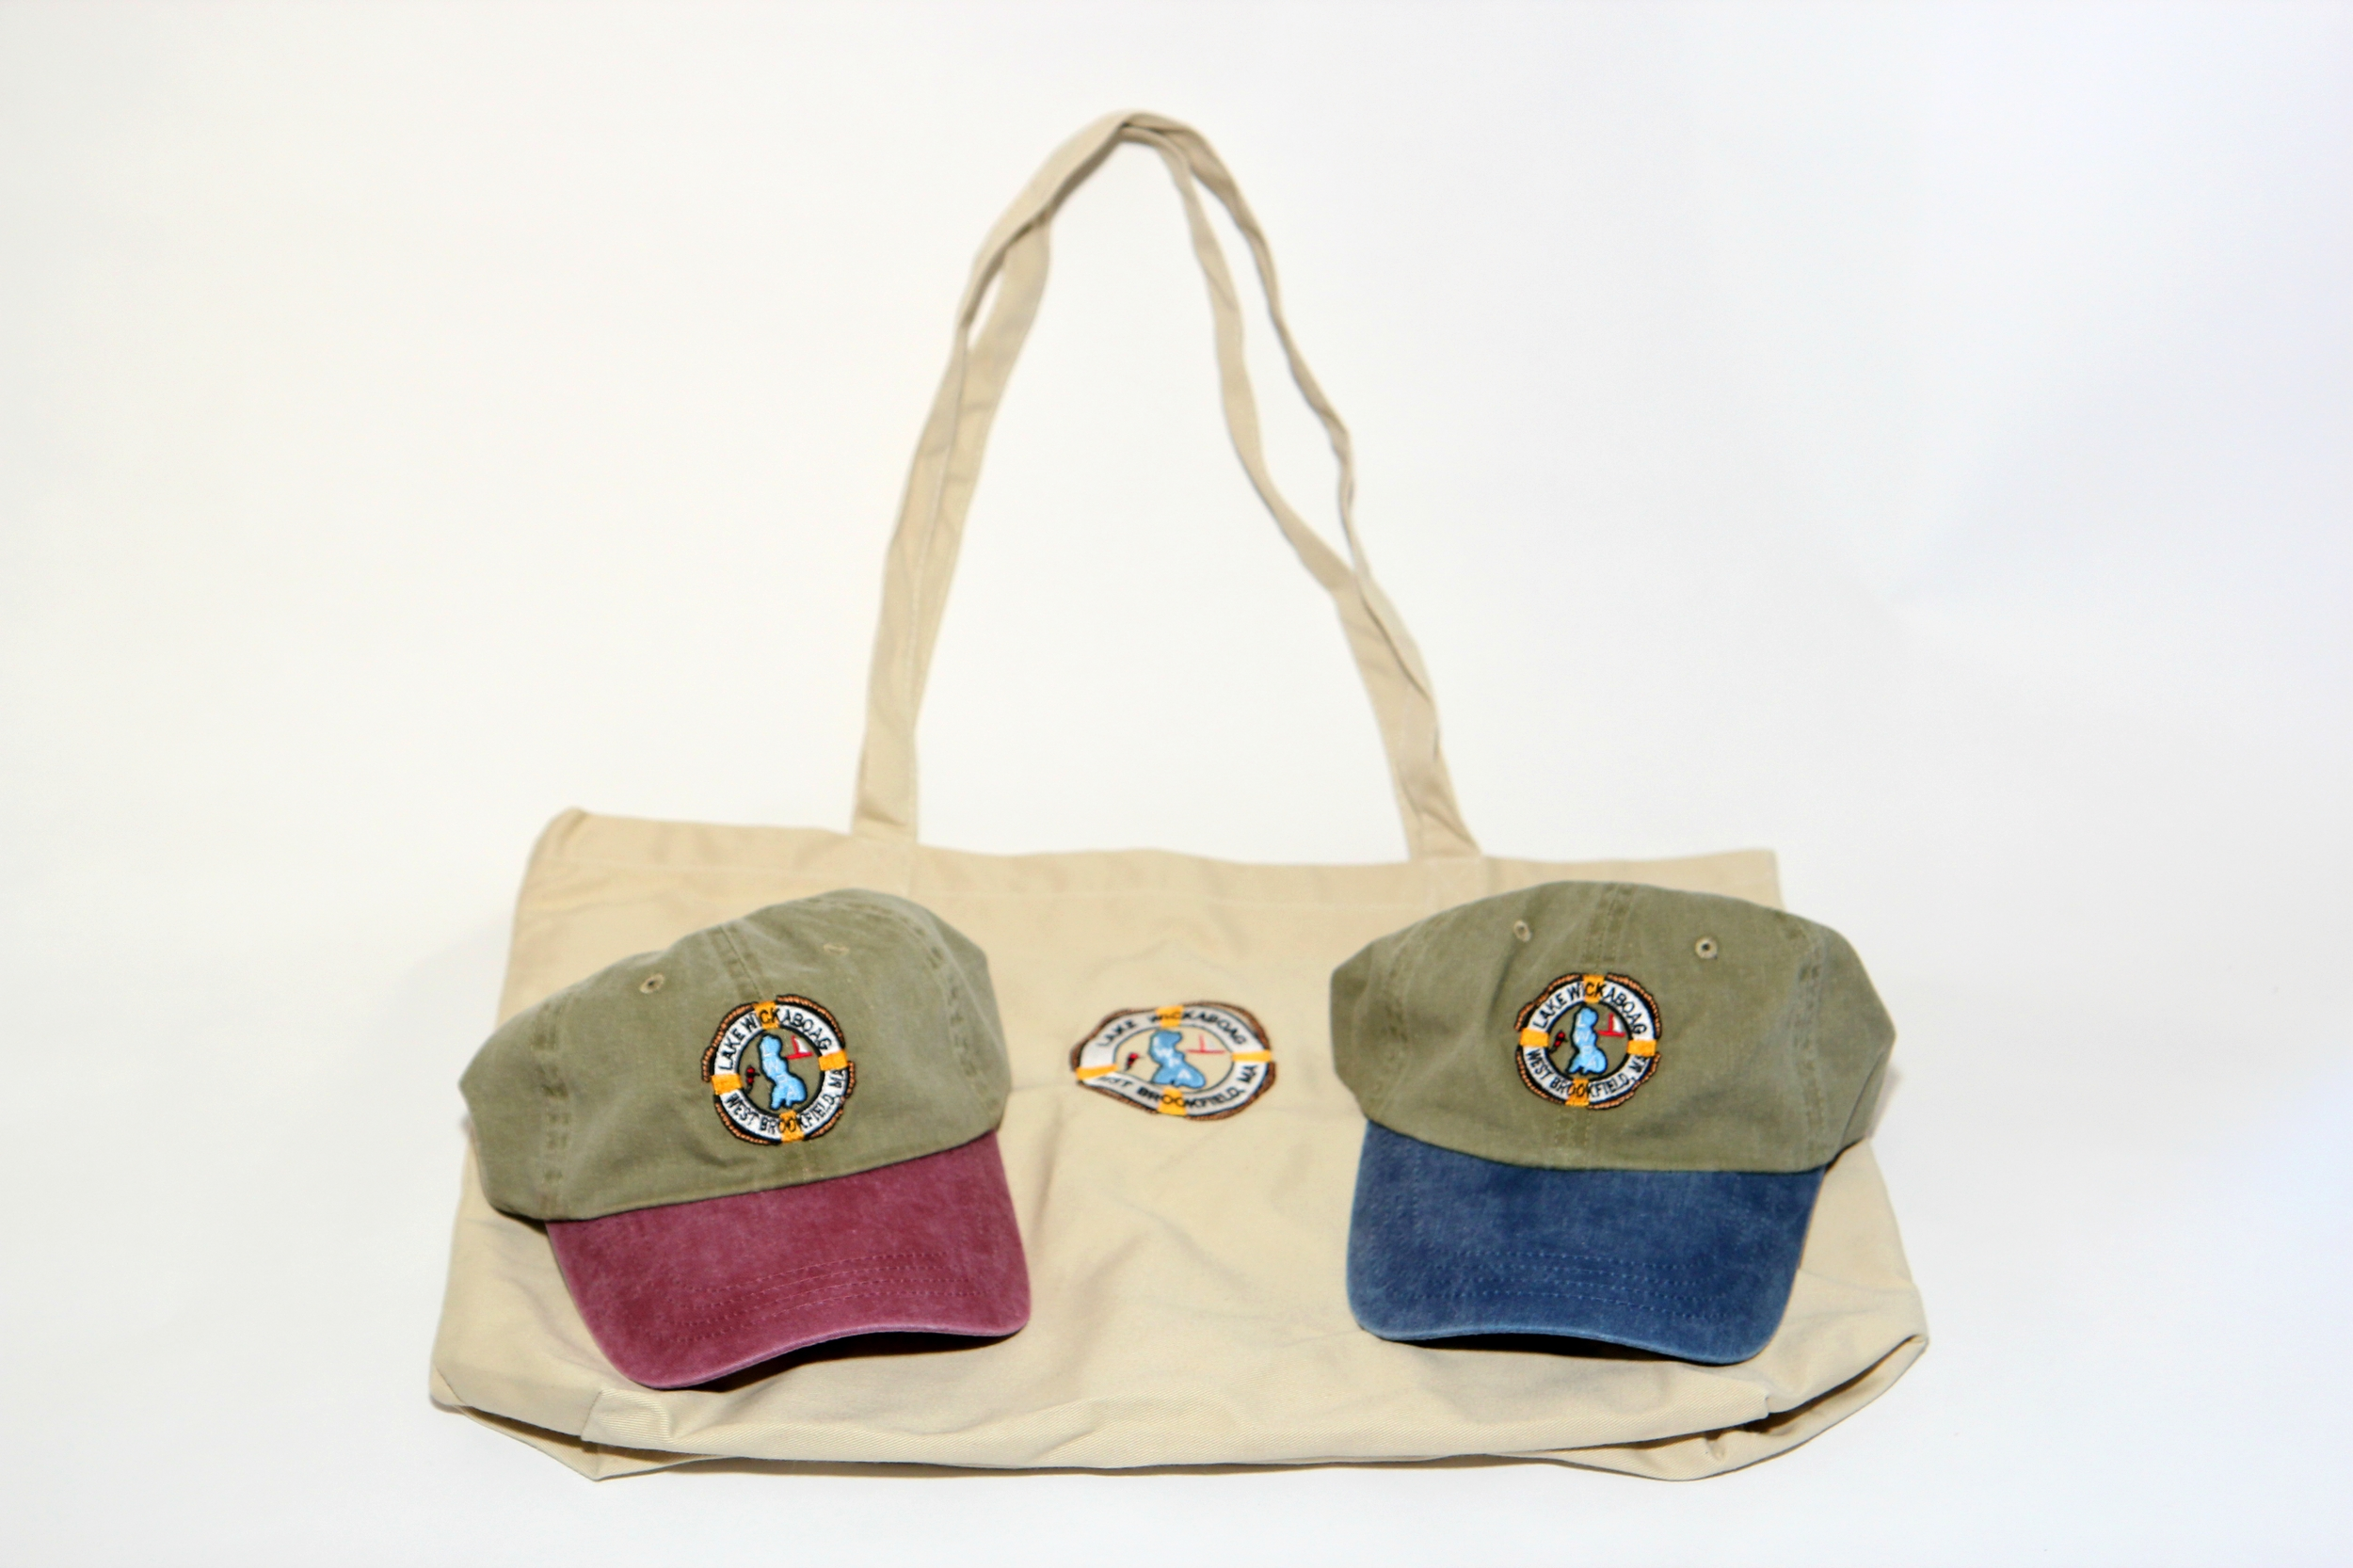 Baseball Hats $20 and Totes with embroidered logo $25